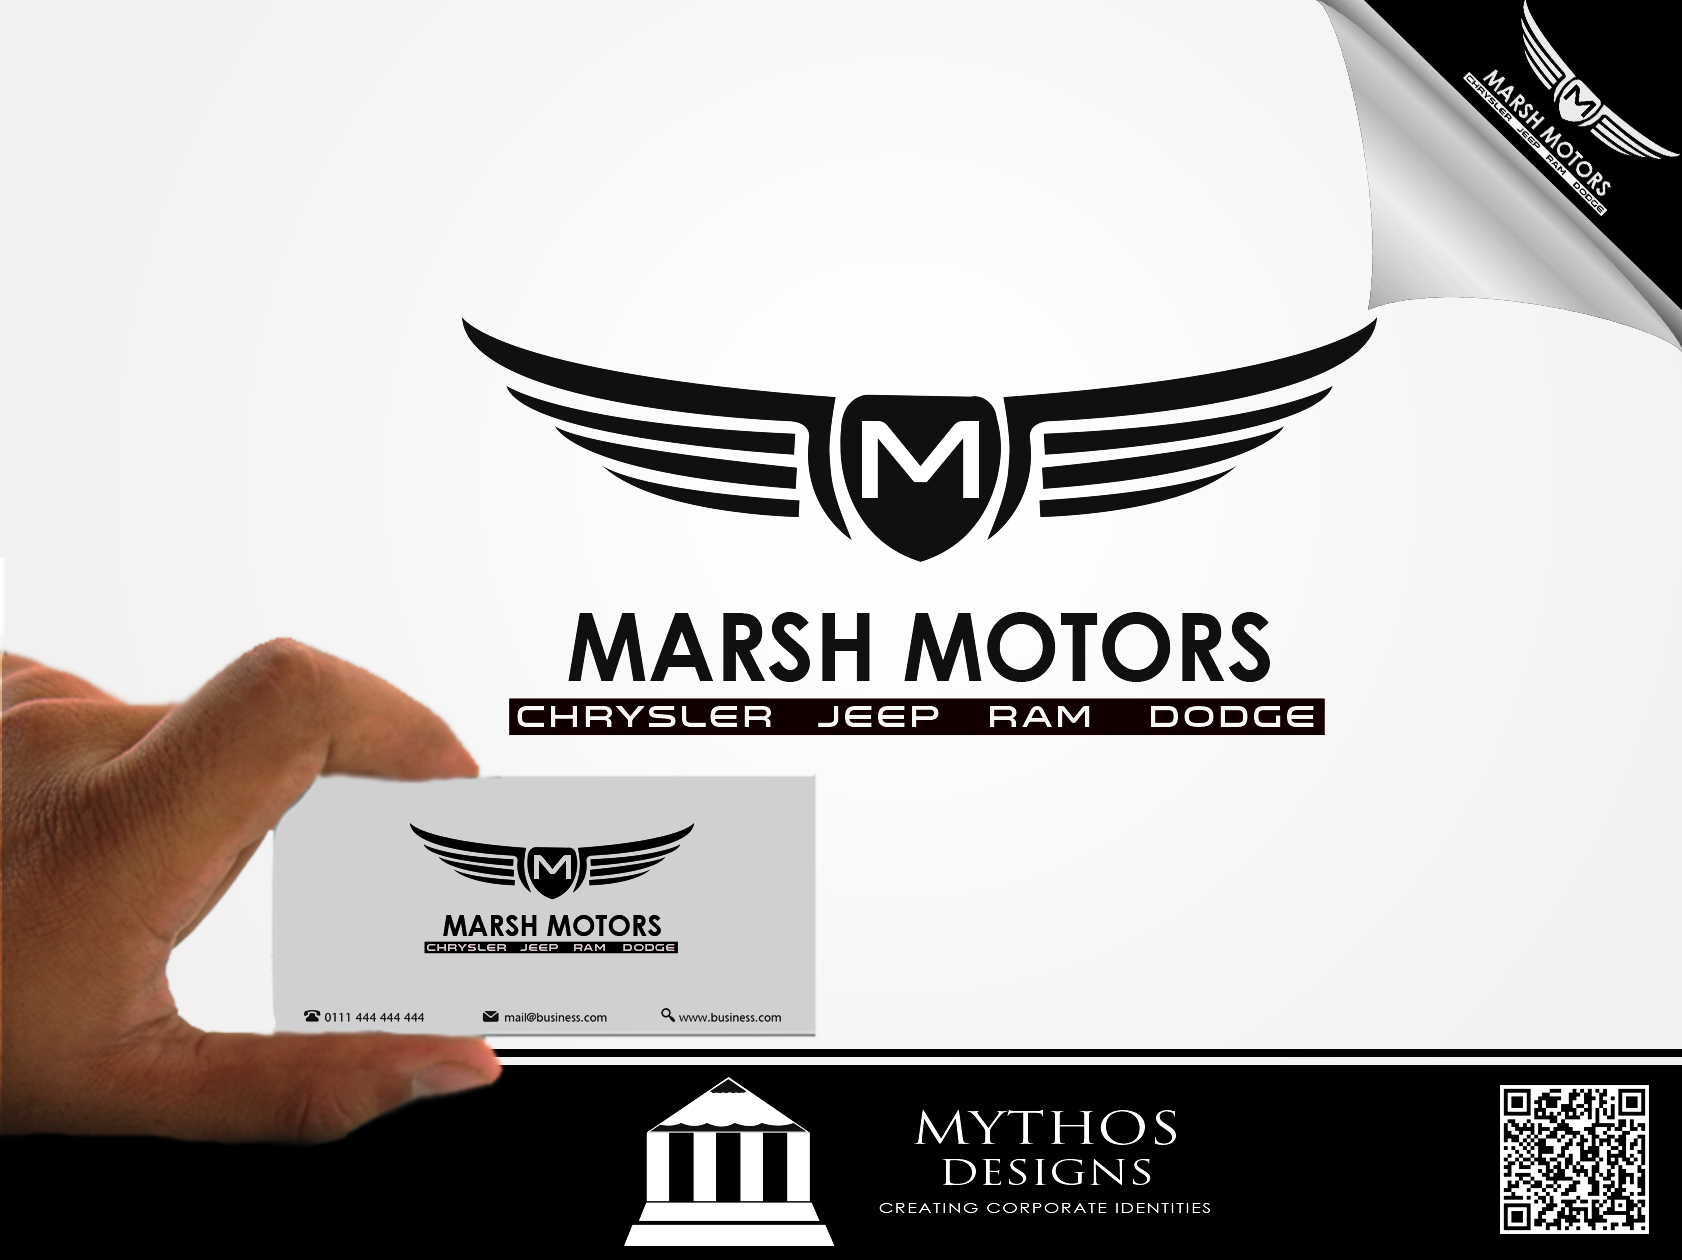 Logo Design by Mythos Designs - Entry No. 52 in the Logo Design Contest Marsh Motors Chrysler Logo Design.